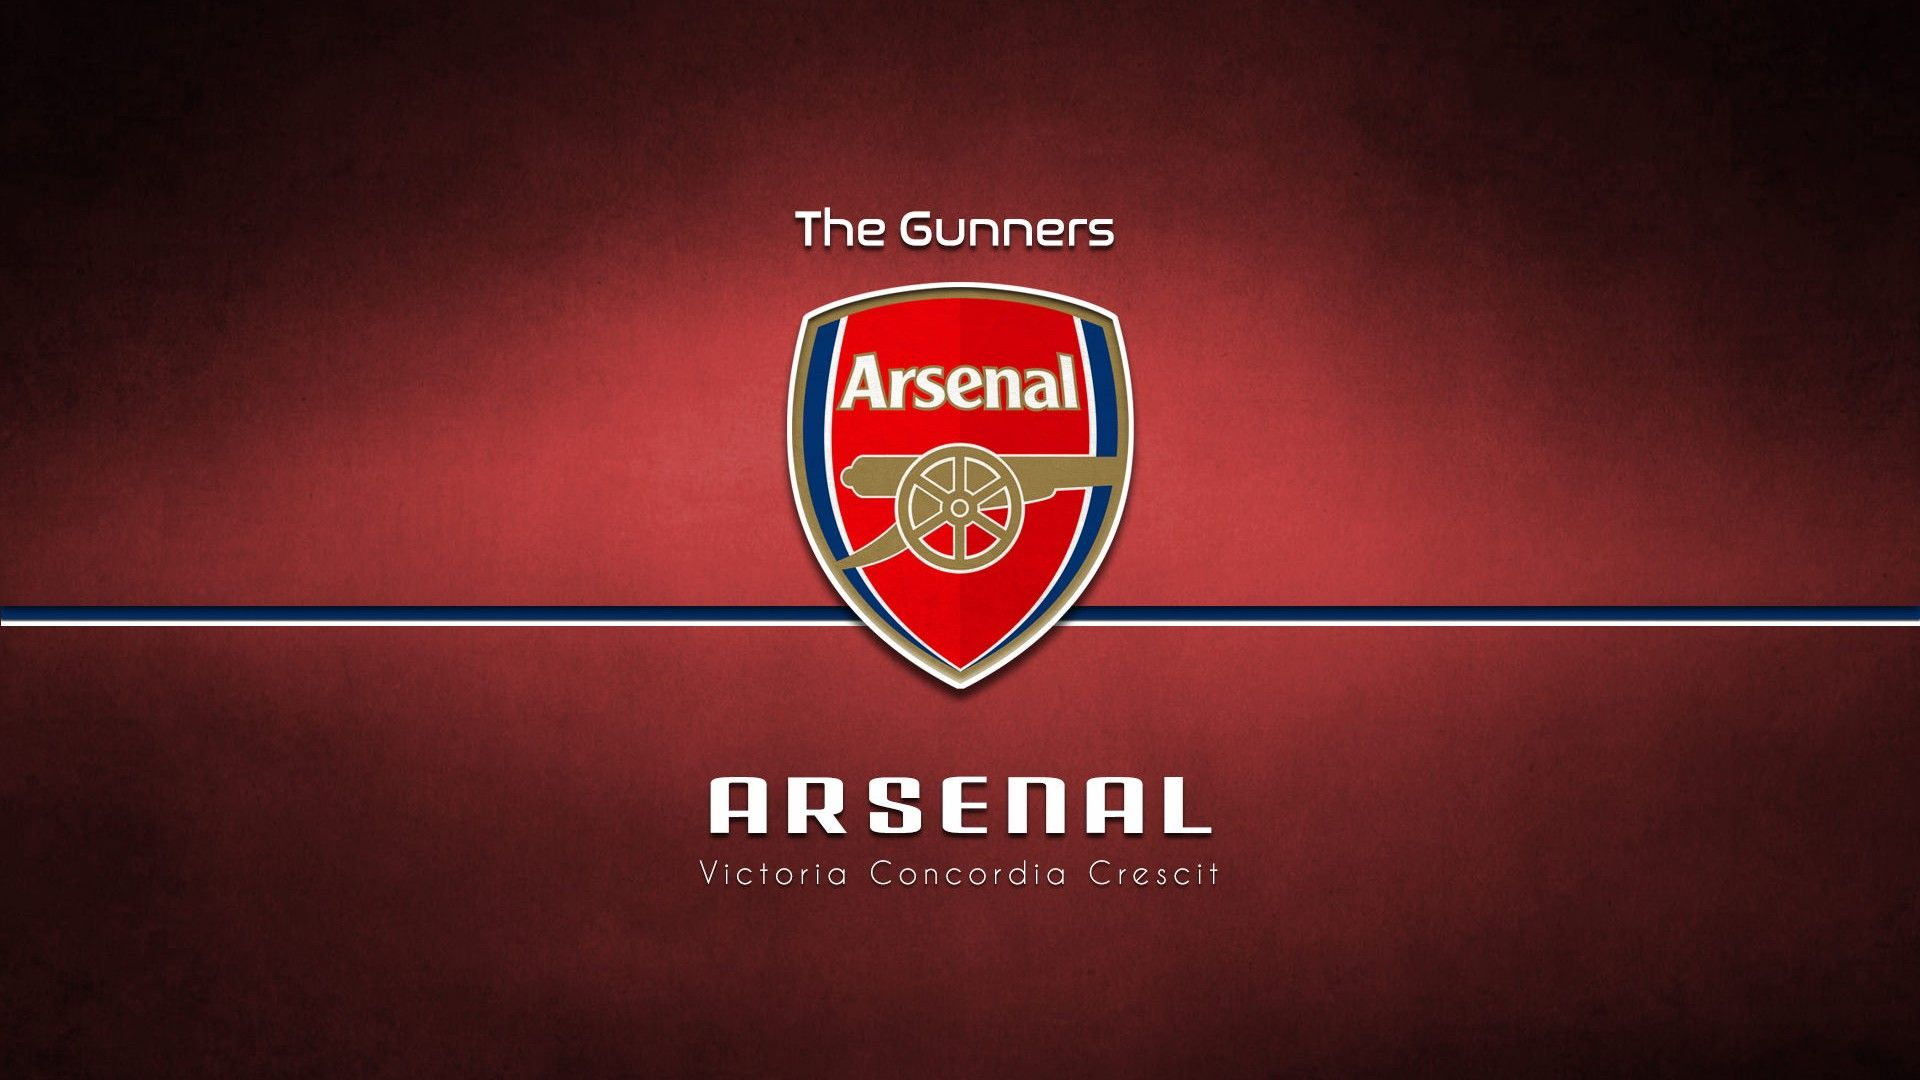 Arsenal Wallpaper For Mac Backgrounds Arsenal wallpapers